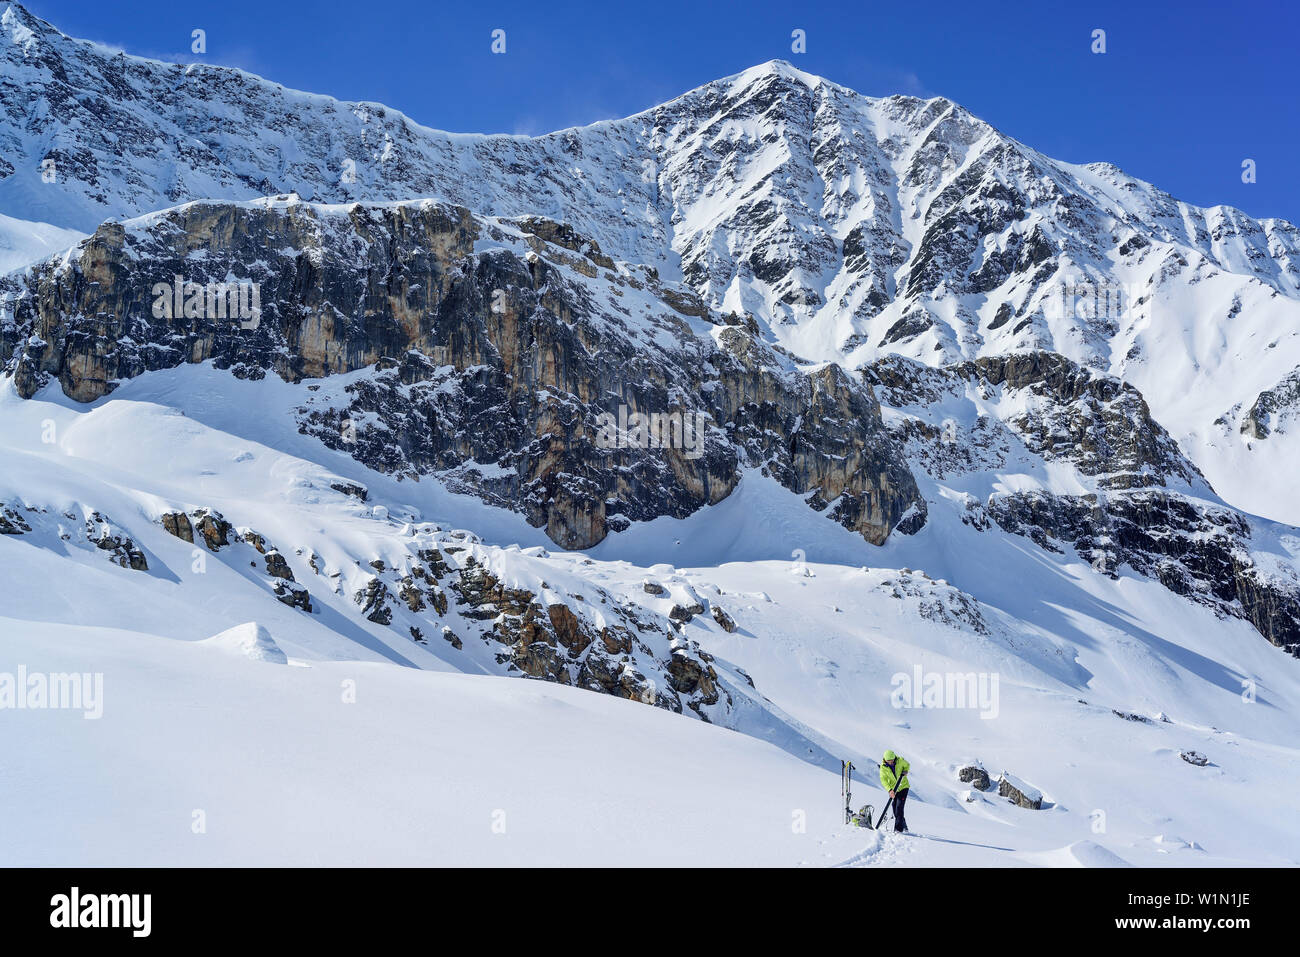 Woman back-country skiing pulling up skins, Colle di Vers, Valle Varaita, Cottian Alps, Piedmont, Italy Stock Photo